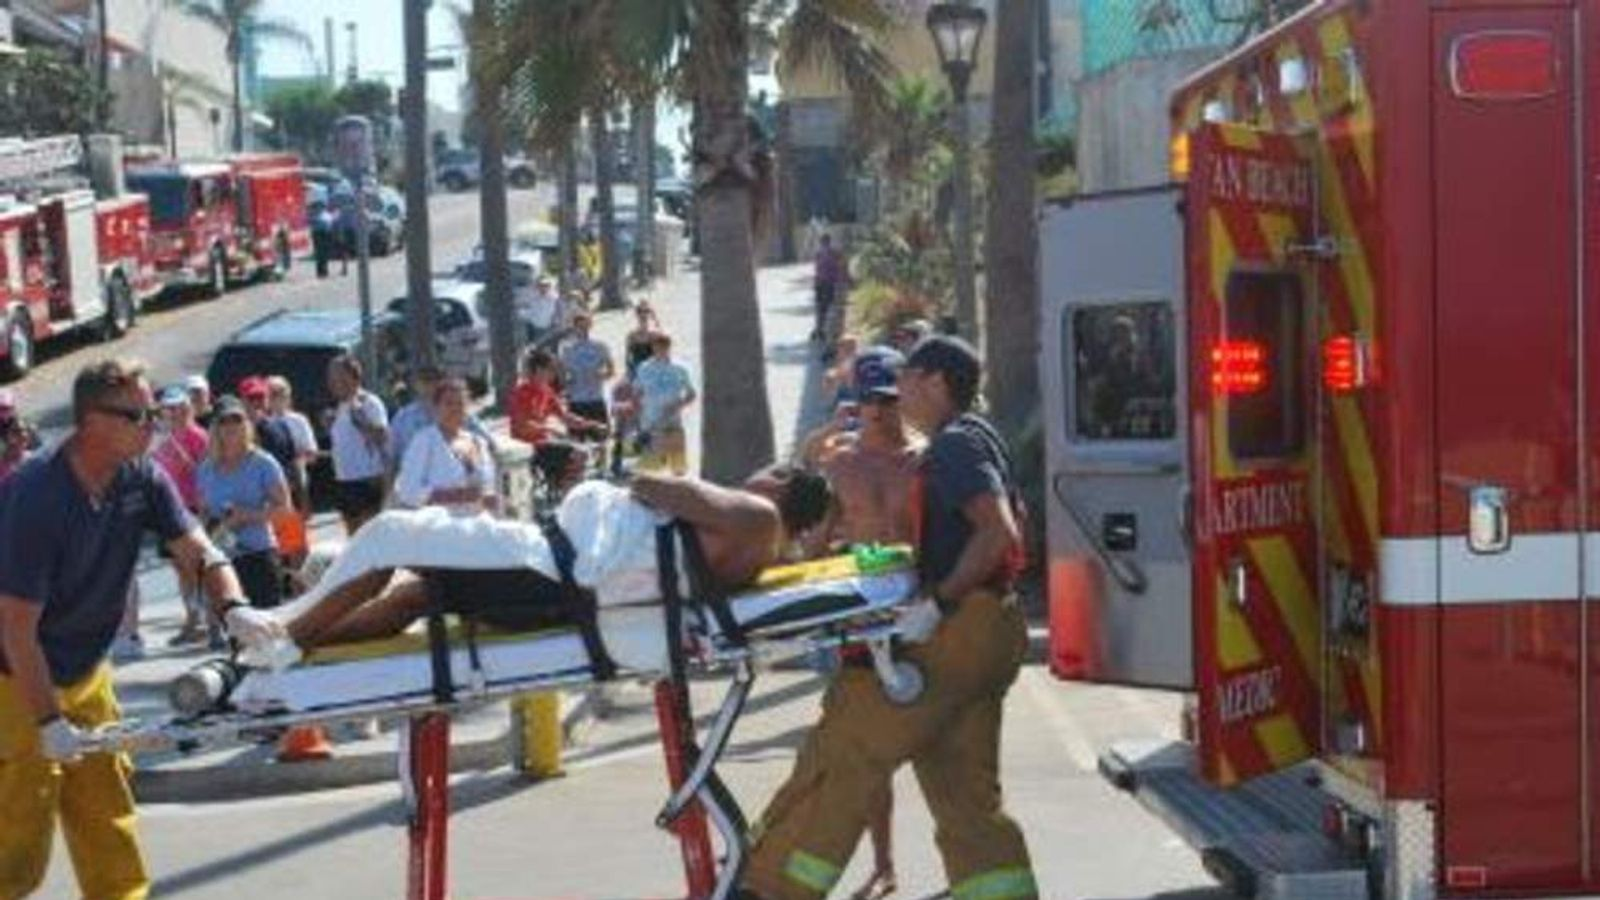 Man attacked by shark in California